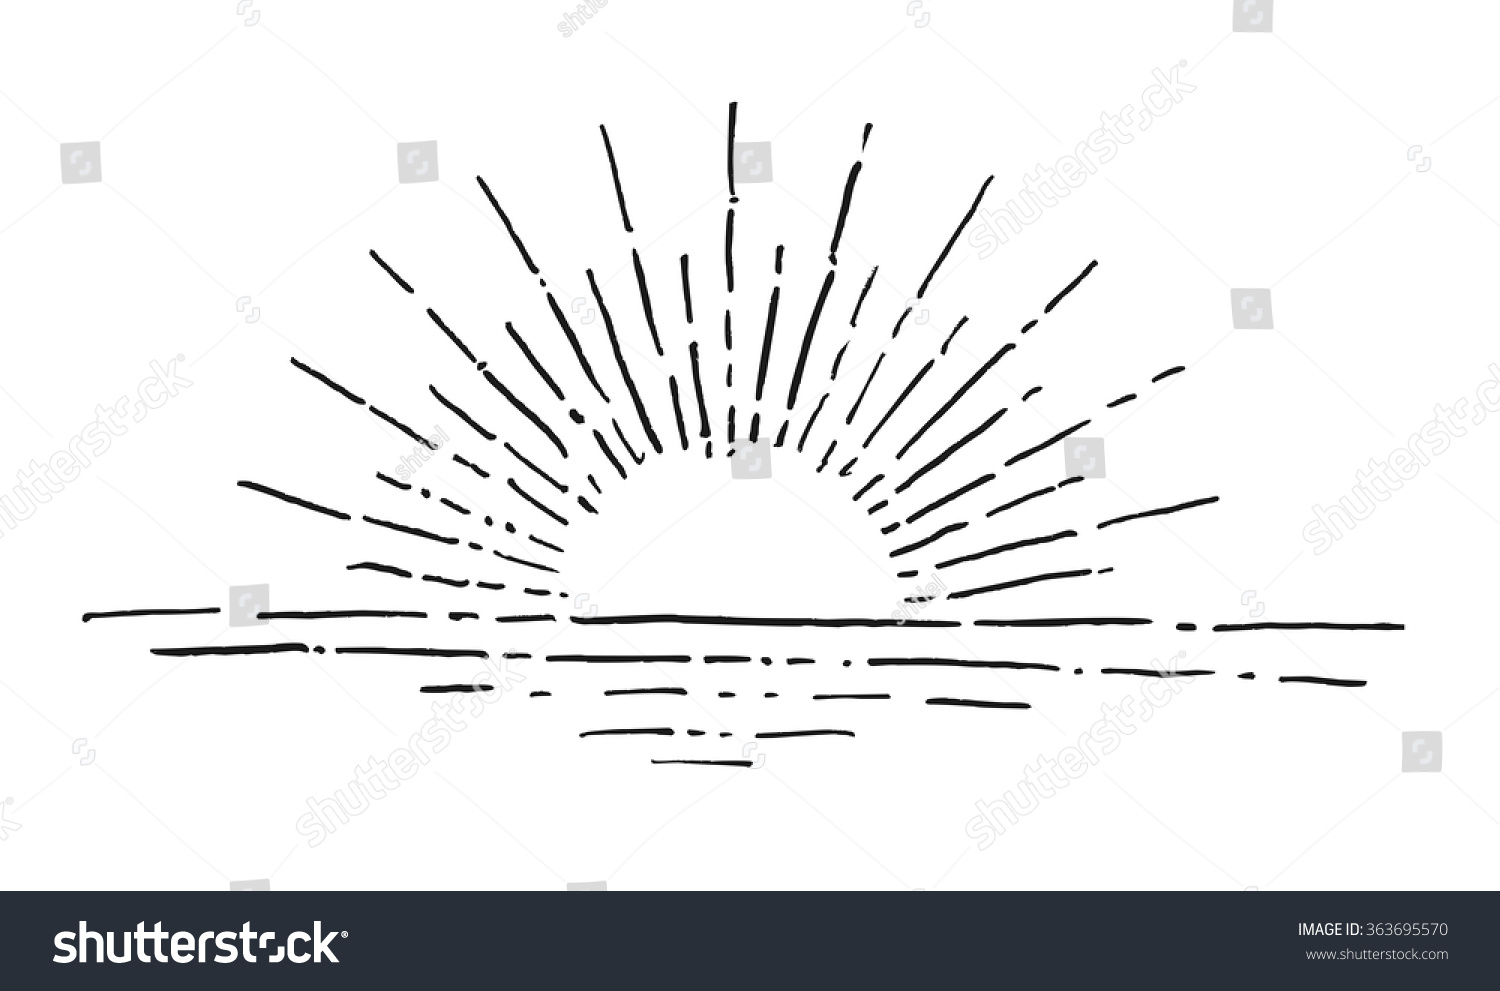 Line Drawing Sun Vector : Linear drawing of sun rise vintage style the image